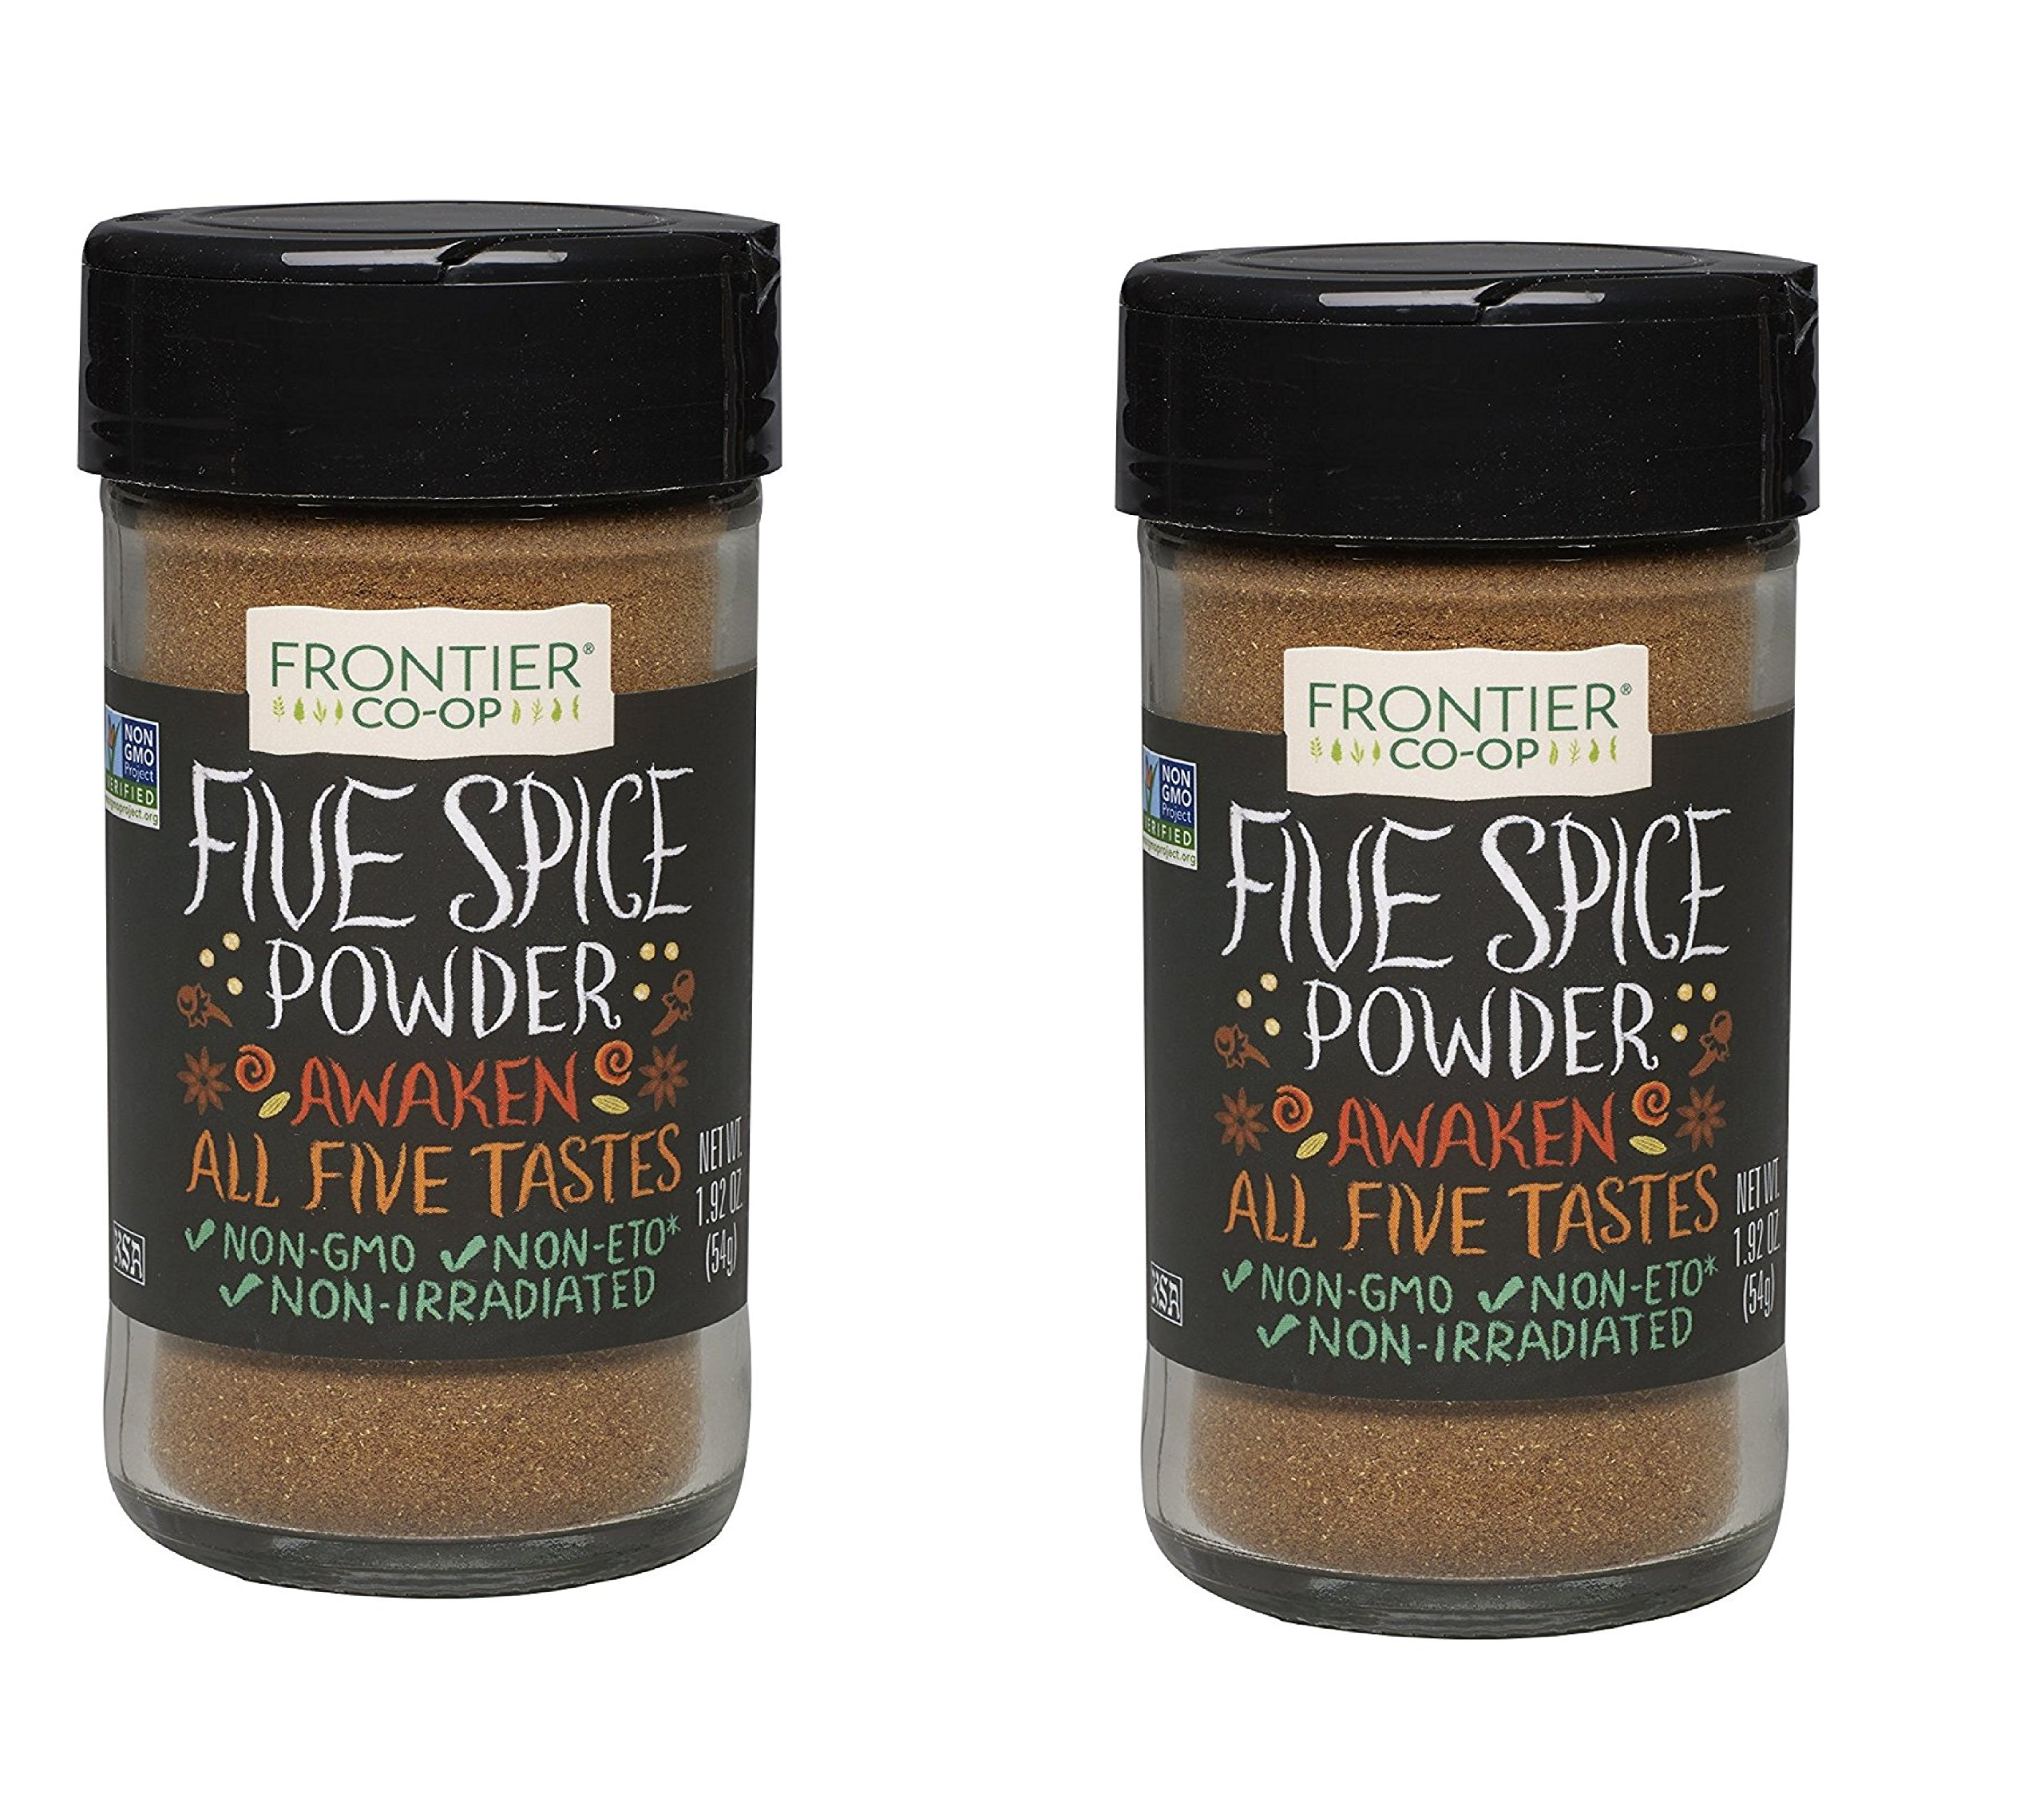 Frontier Five Spice Powder, 1.92-Ounce (2 Bottles)